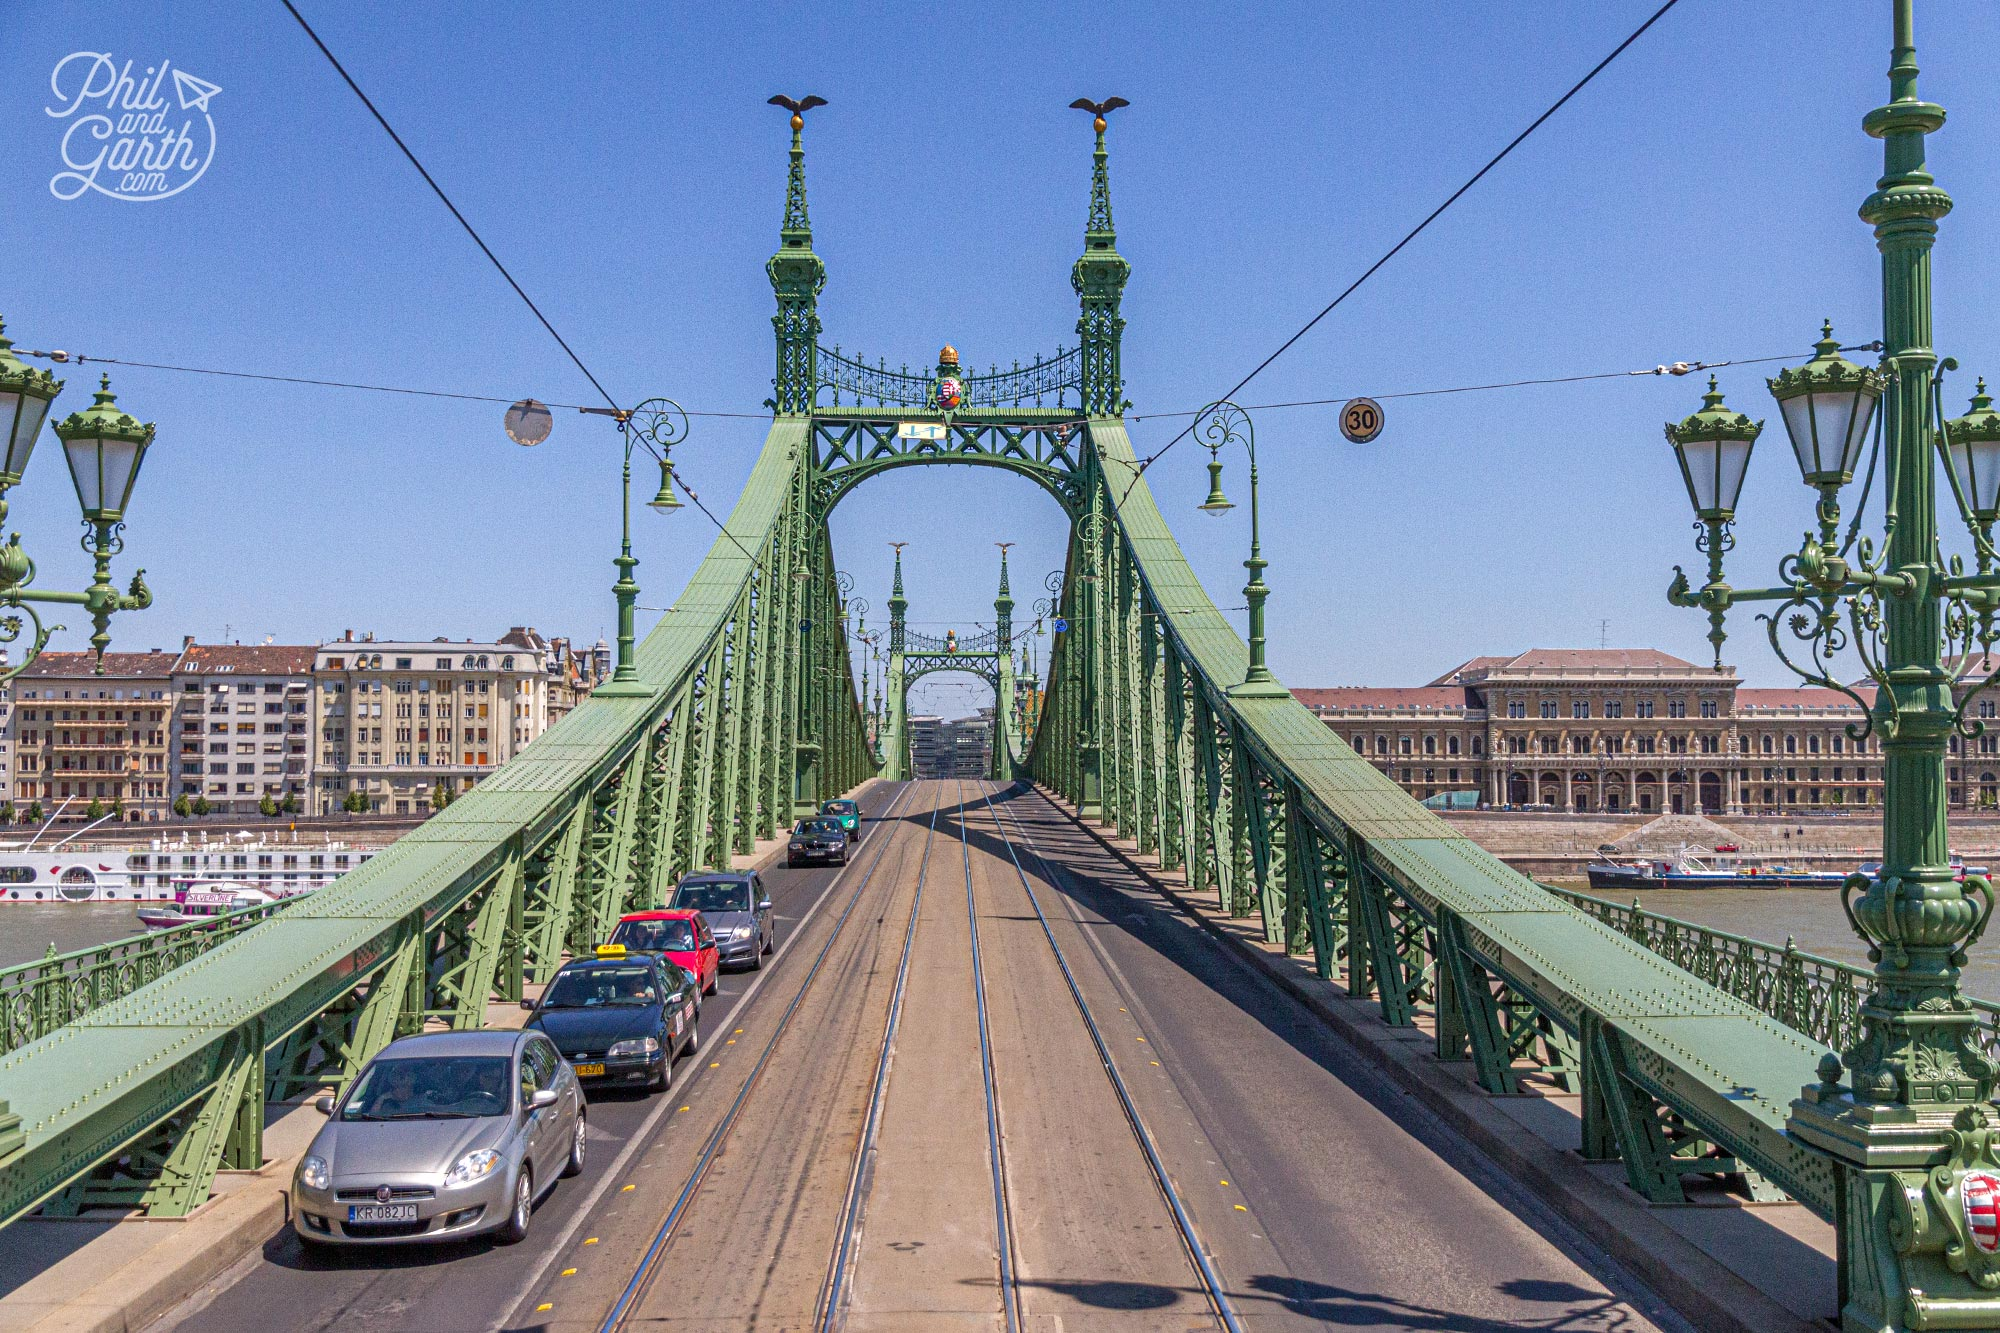 Budapest's Liberty Bridge built in 1896 - one of the may bridges that connect the Buda and Pest sides together